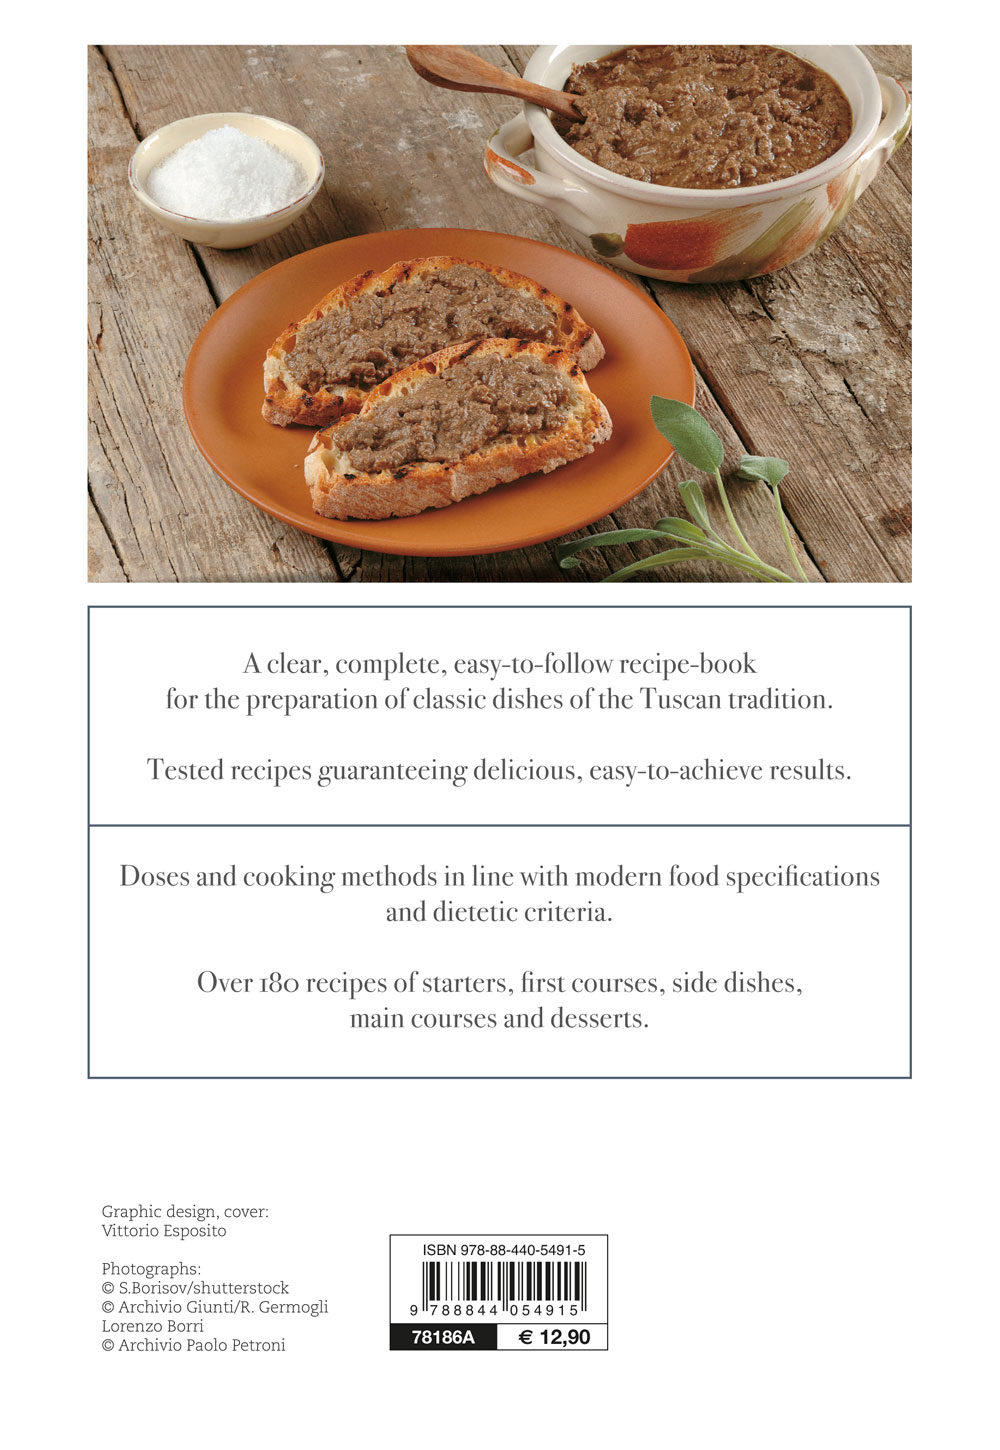 Recipes of Tuscany